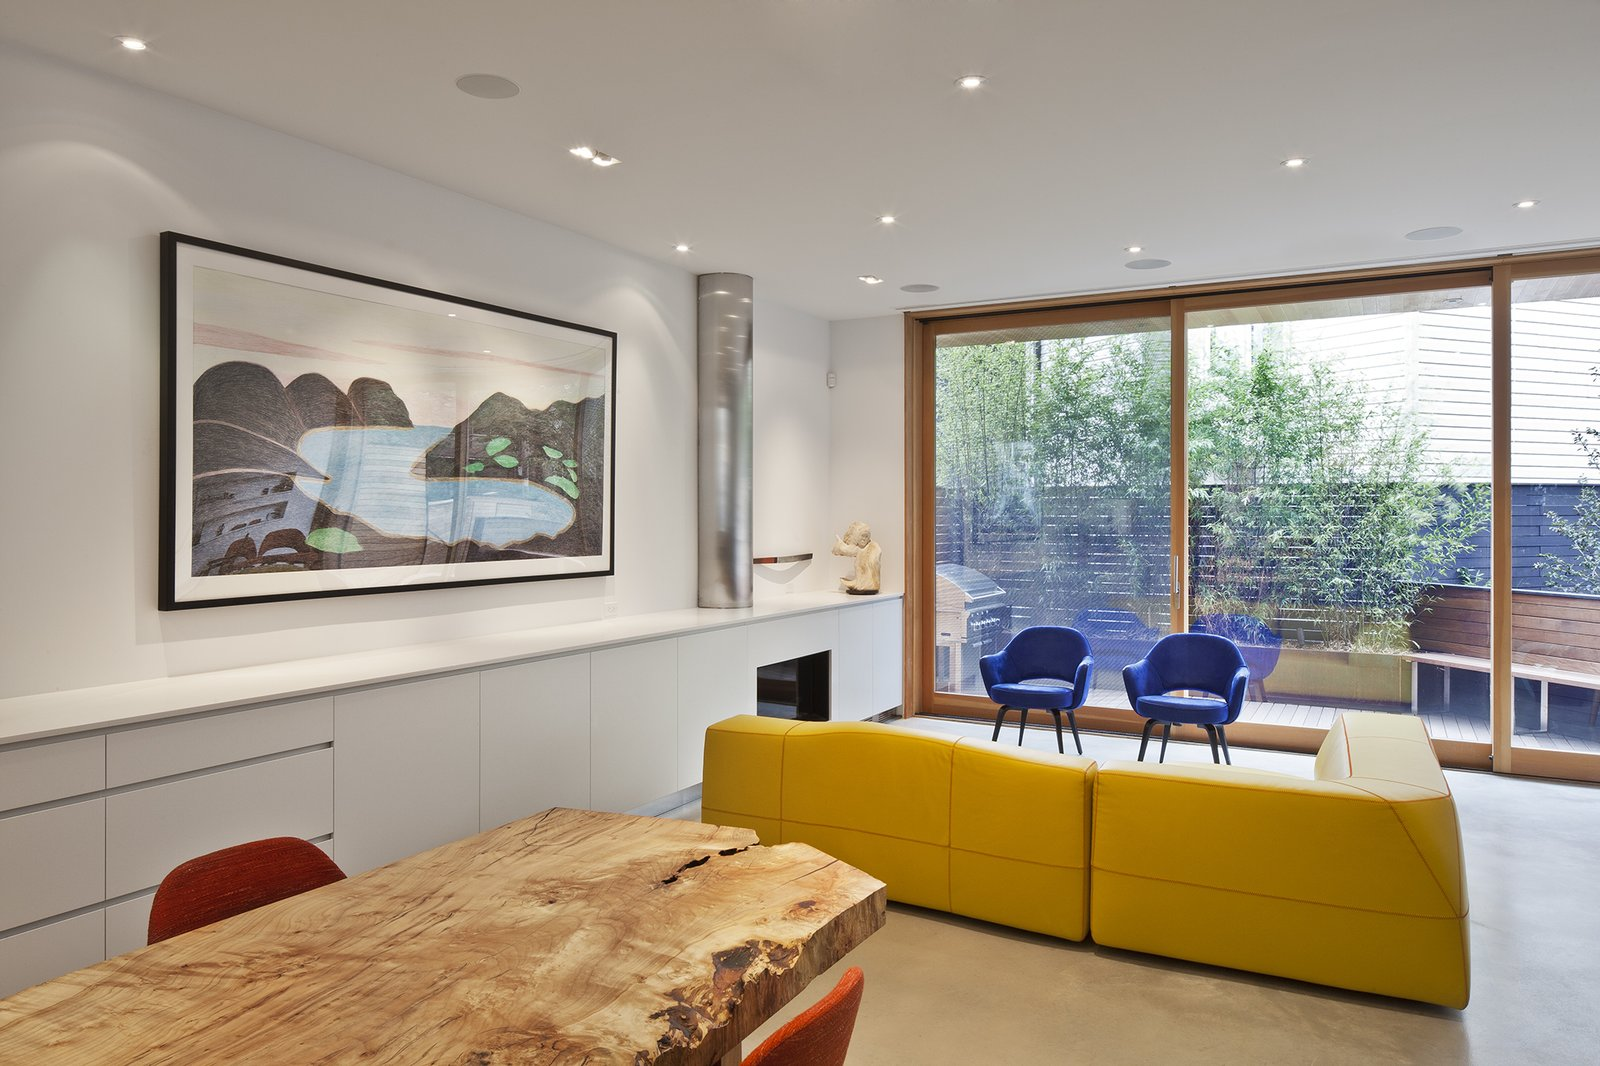 """""""The [design] is simple and flexible, with an open plan on the first floor that allows the kitchen to flow into the dining and living spaces,"""" Clarkson said. Concrete floors help to unify the spaces, which feature a B&B Italia Bend-Sofa and Saarinen executive armchairs in royal blue velvet.  King West by Kelly Dawson"""